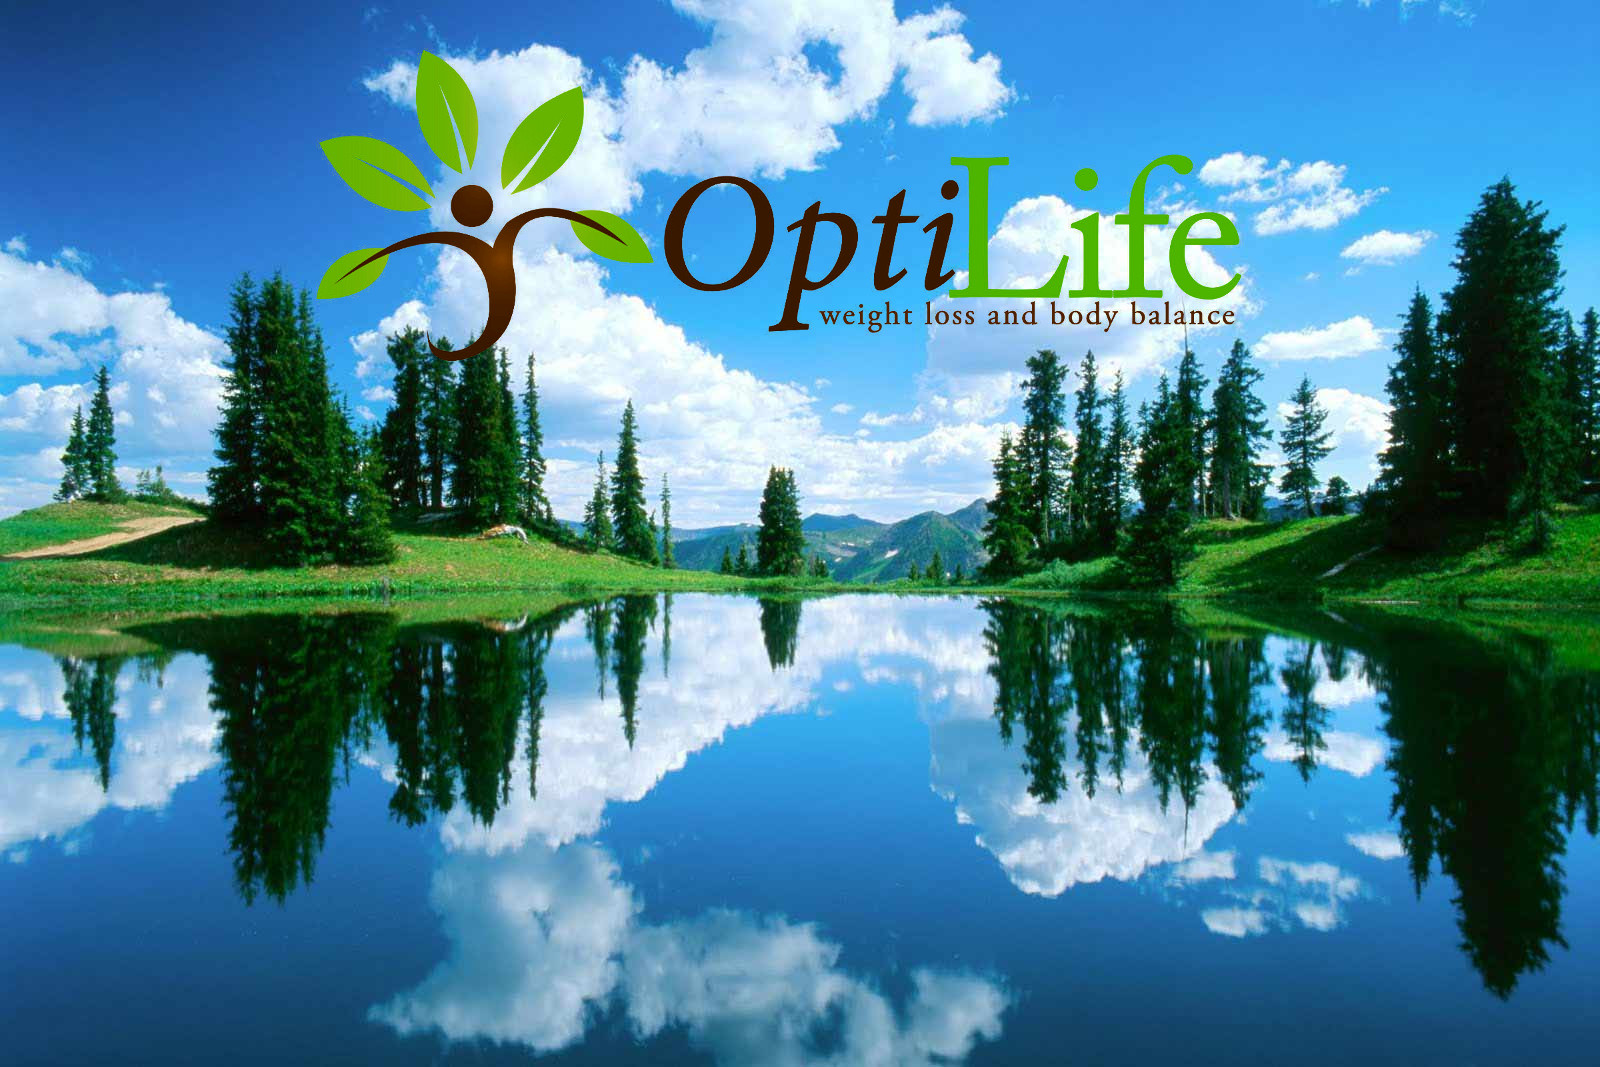 OptiLife Weight Loss and Body Balance | Redding Health Expo, Redding CA Health and Wellness Show